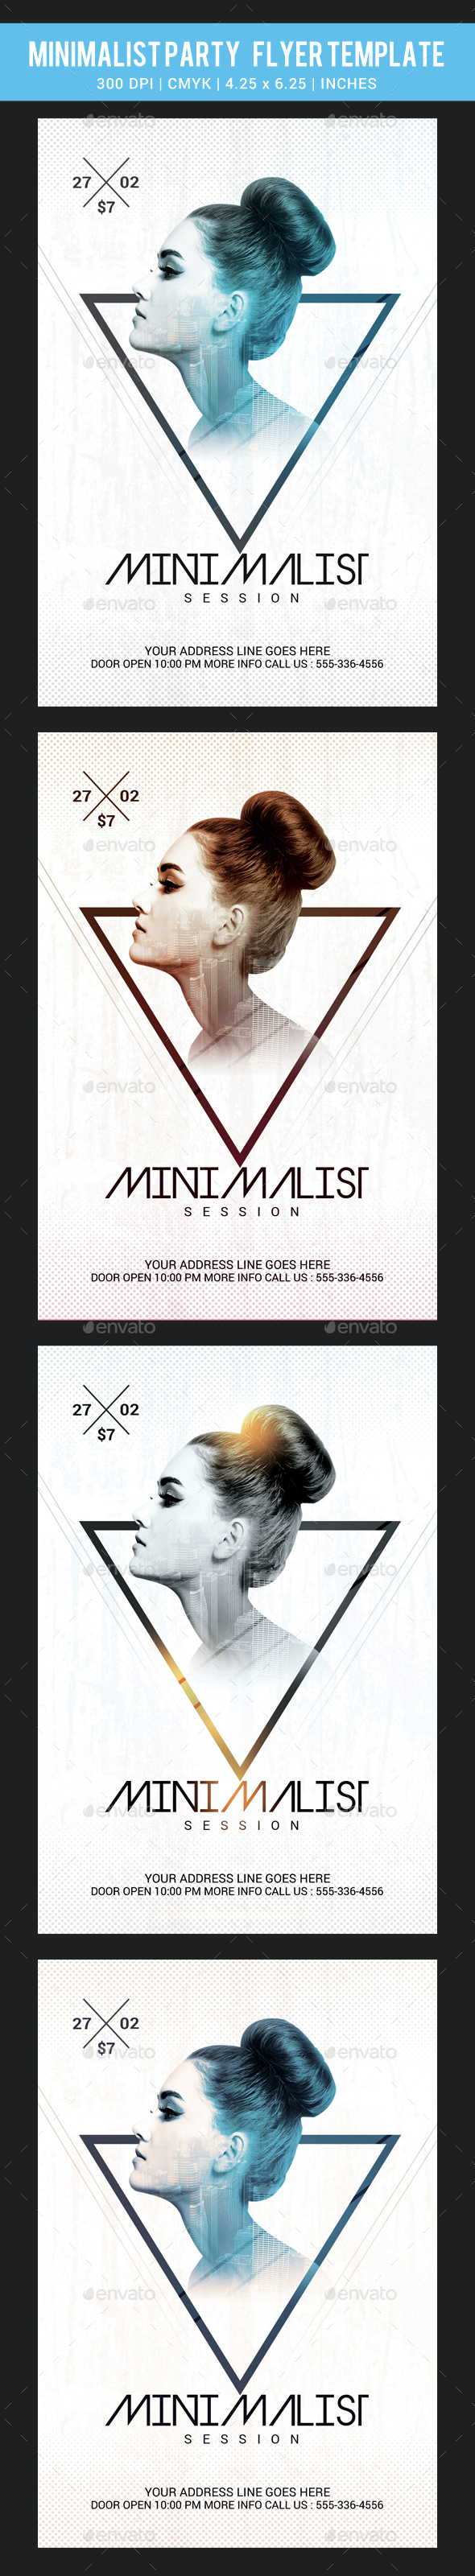 Minimalist Party Flyer Template - Clubs & Parties Events